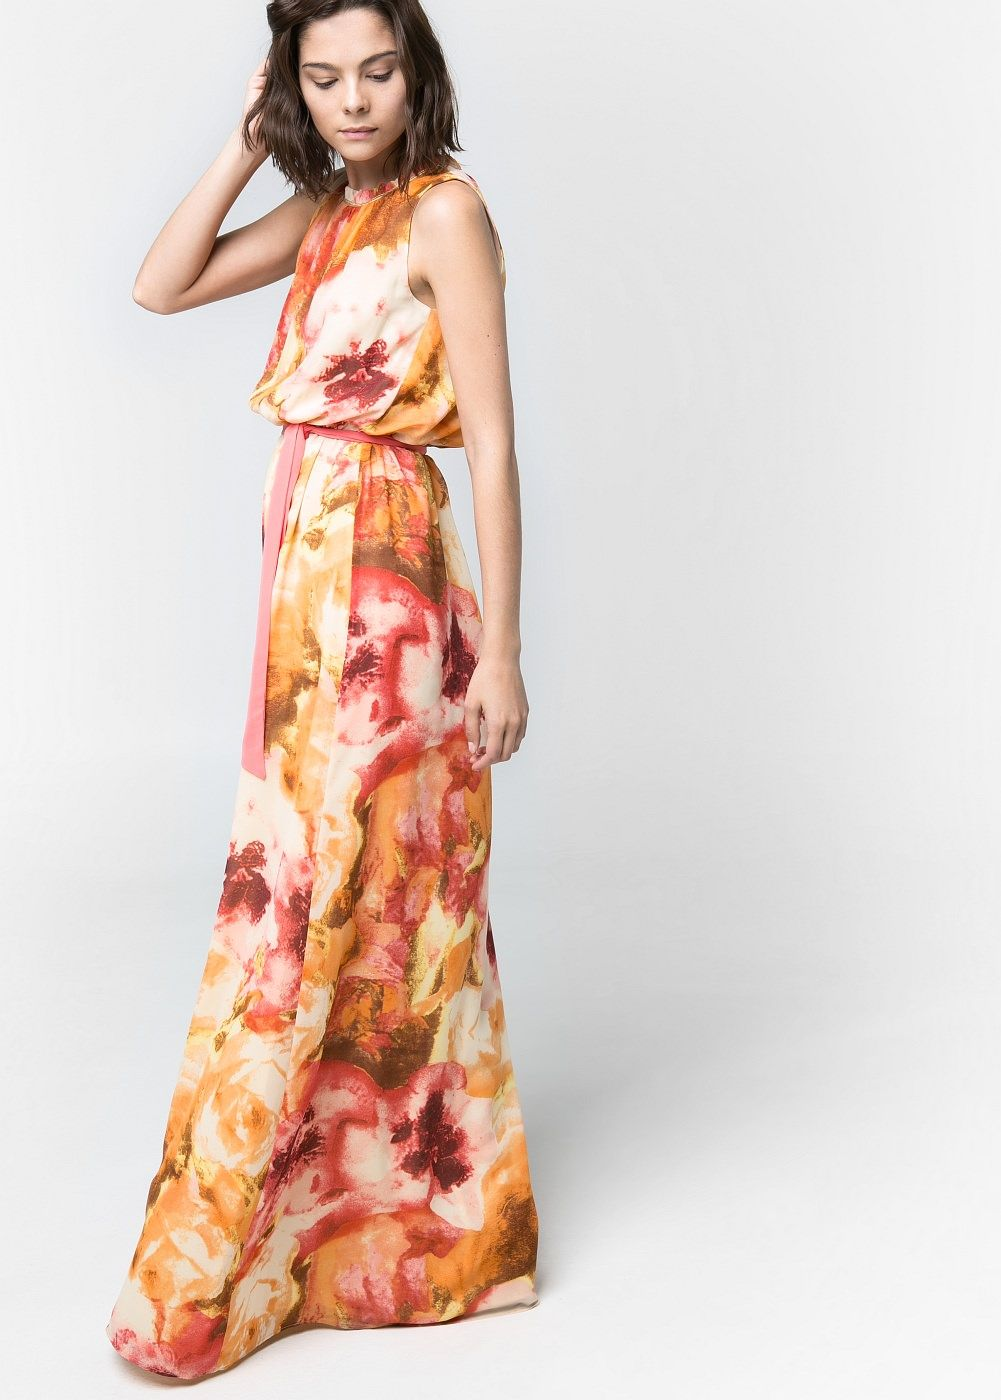 Floral gown - Women